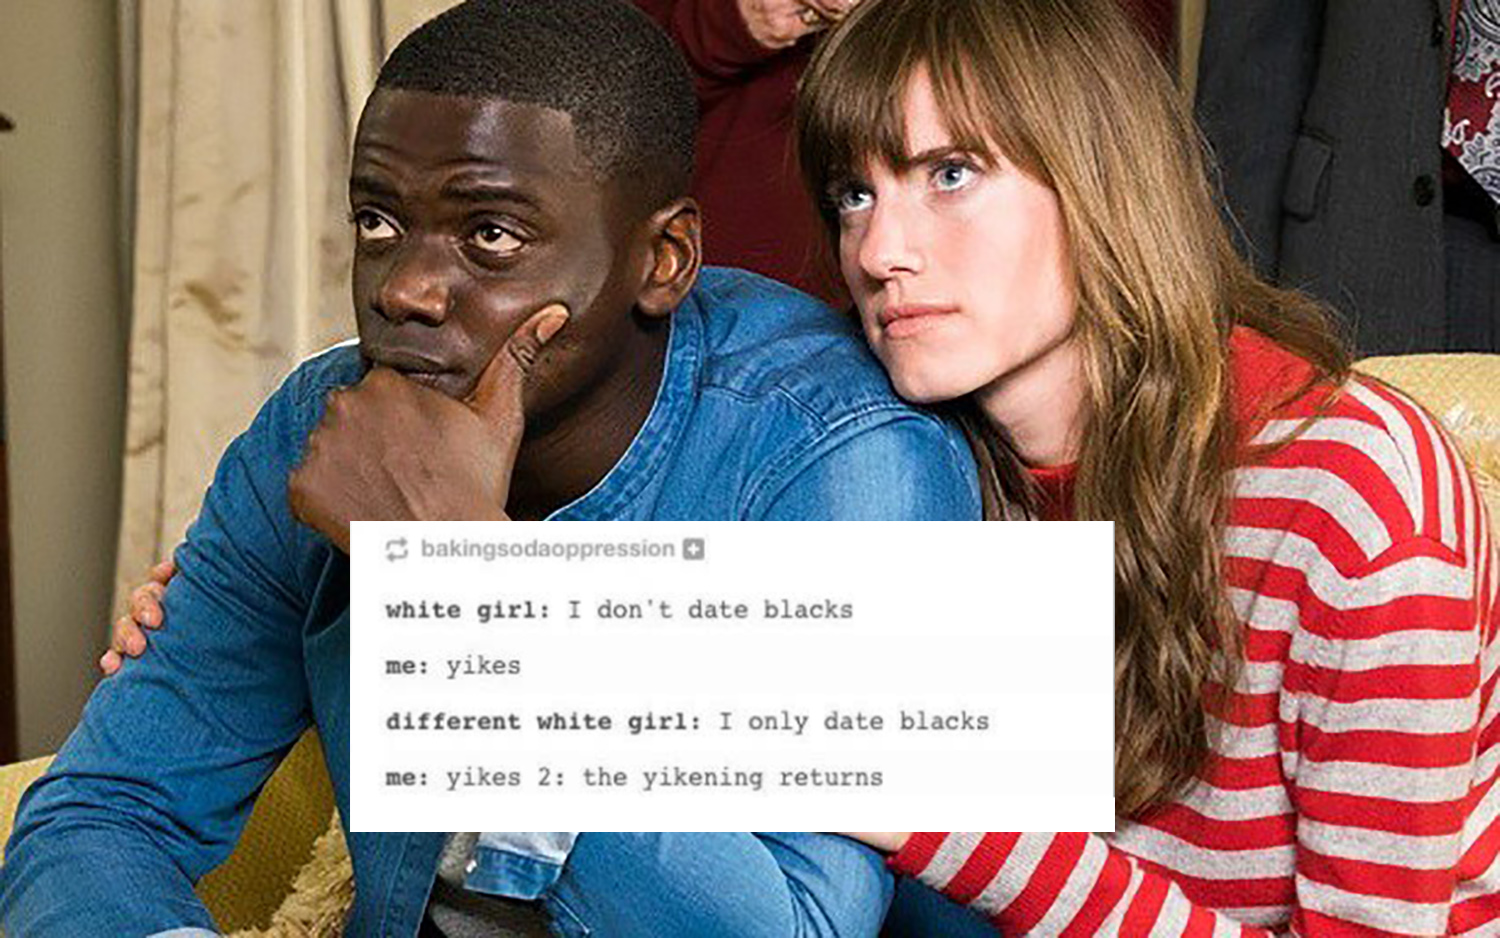 dating sites and racism